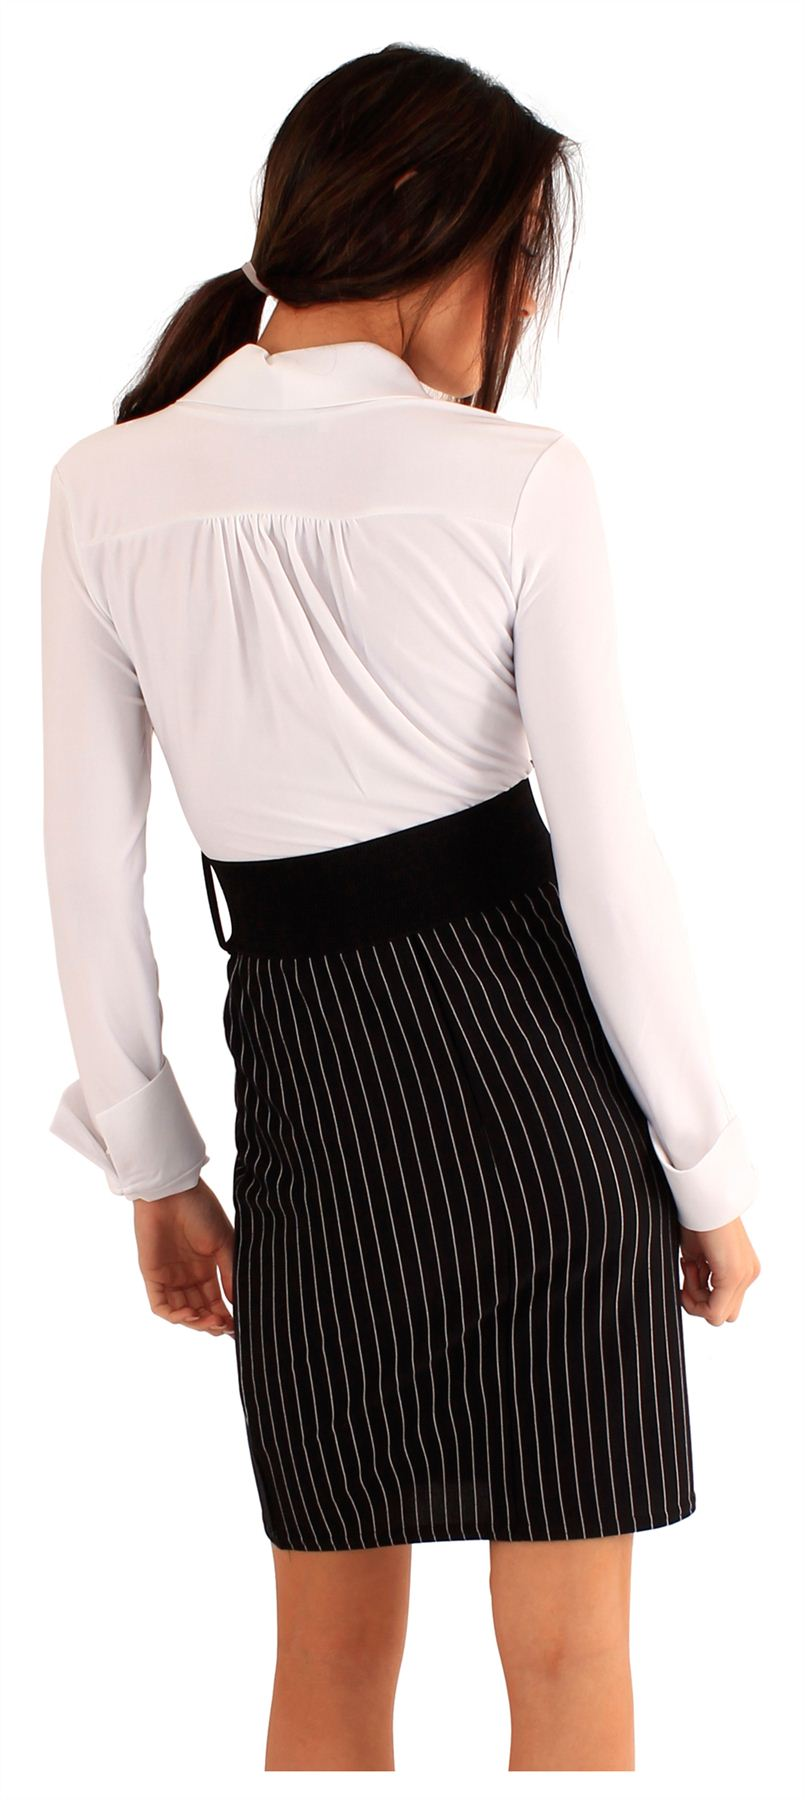 New-Ladies-Collared-Full-Sleeve-Shirt-Belted-Pencil-Skirt-2-In-1-Dress-8-14